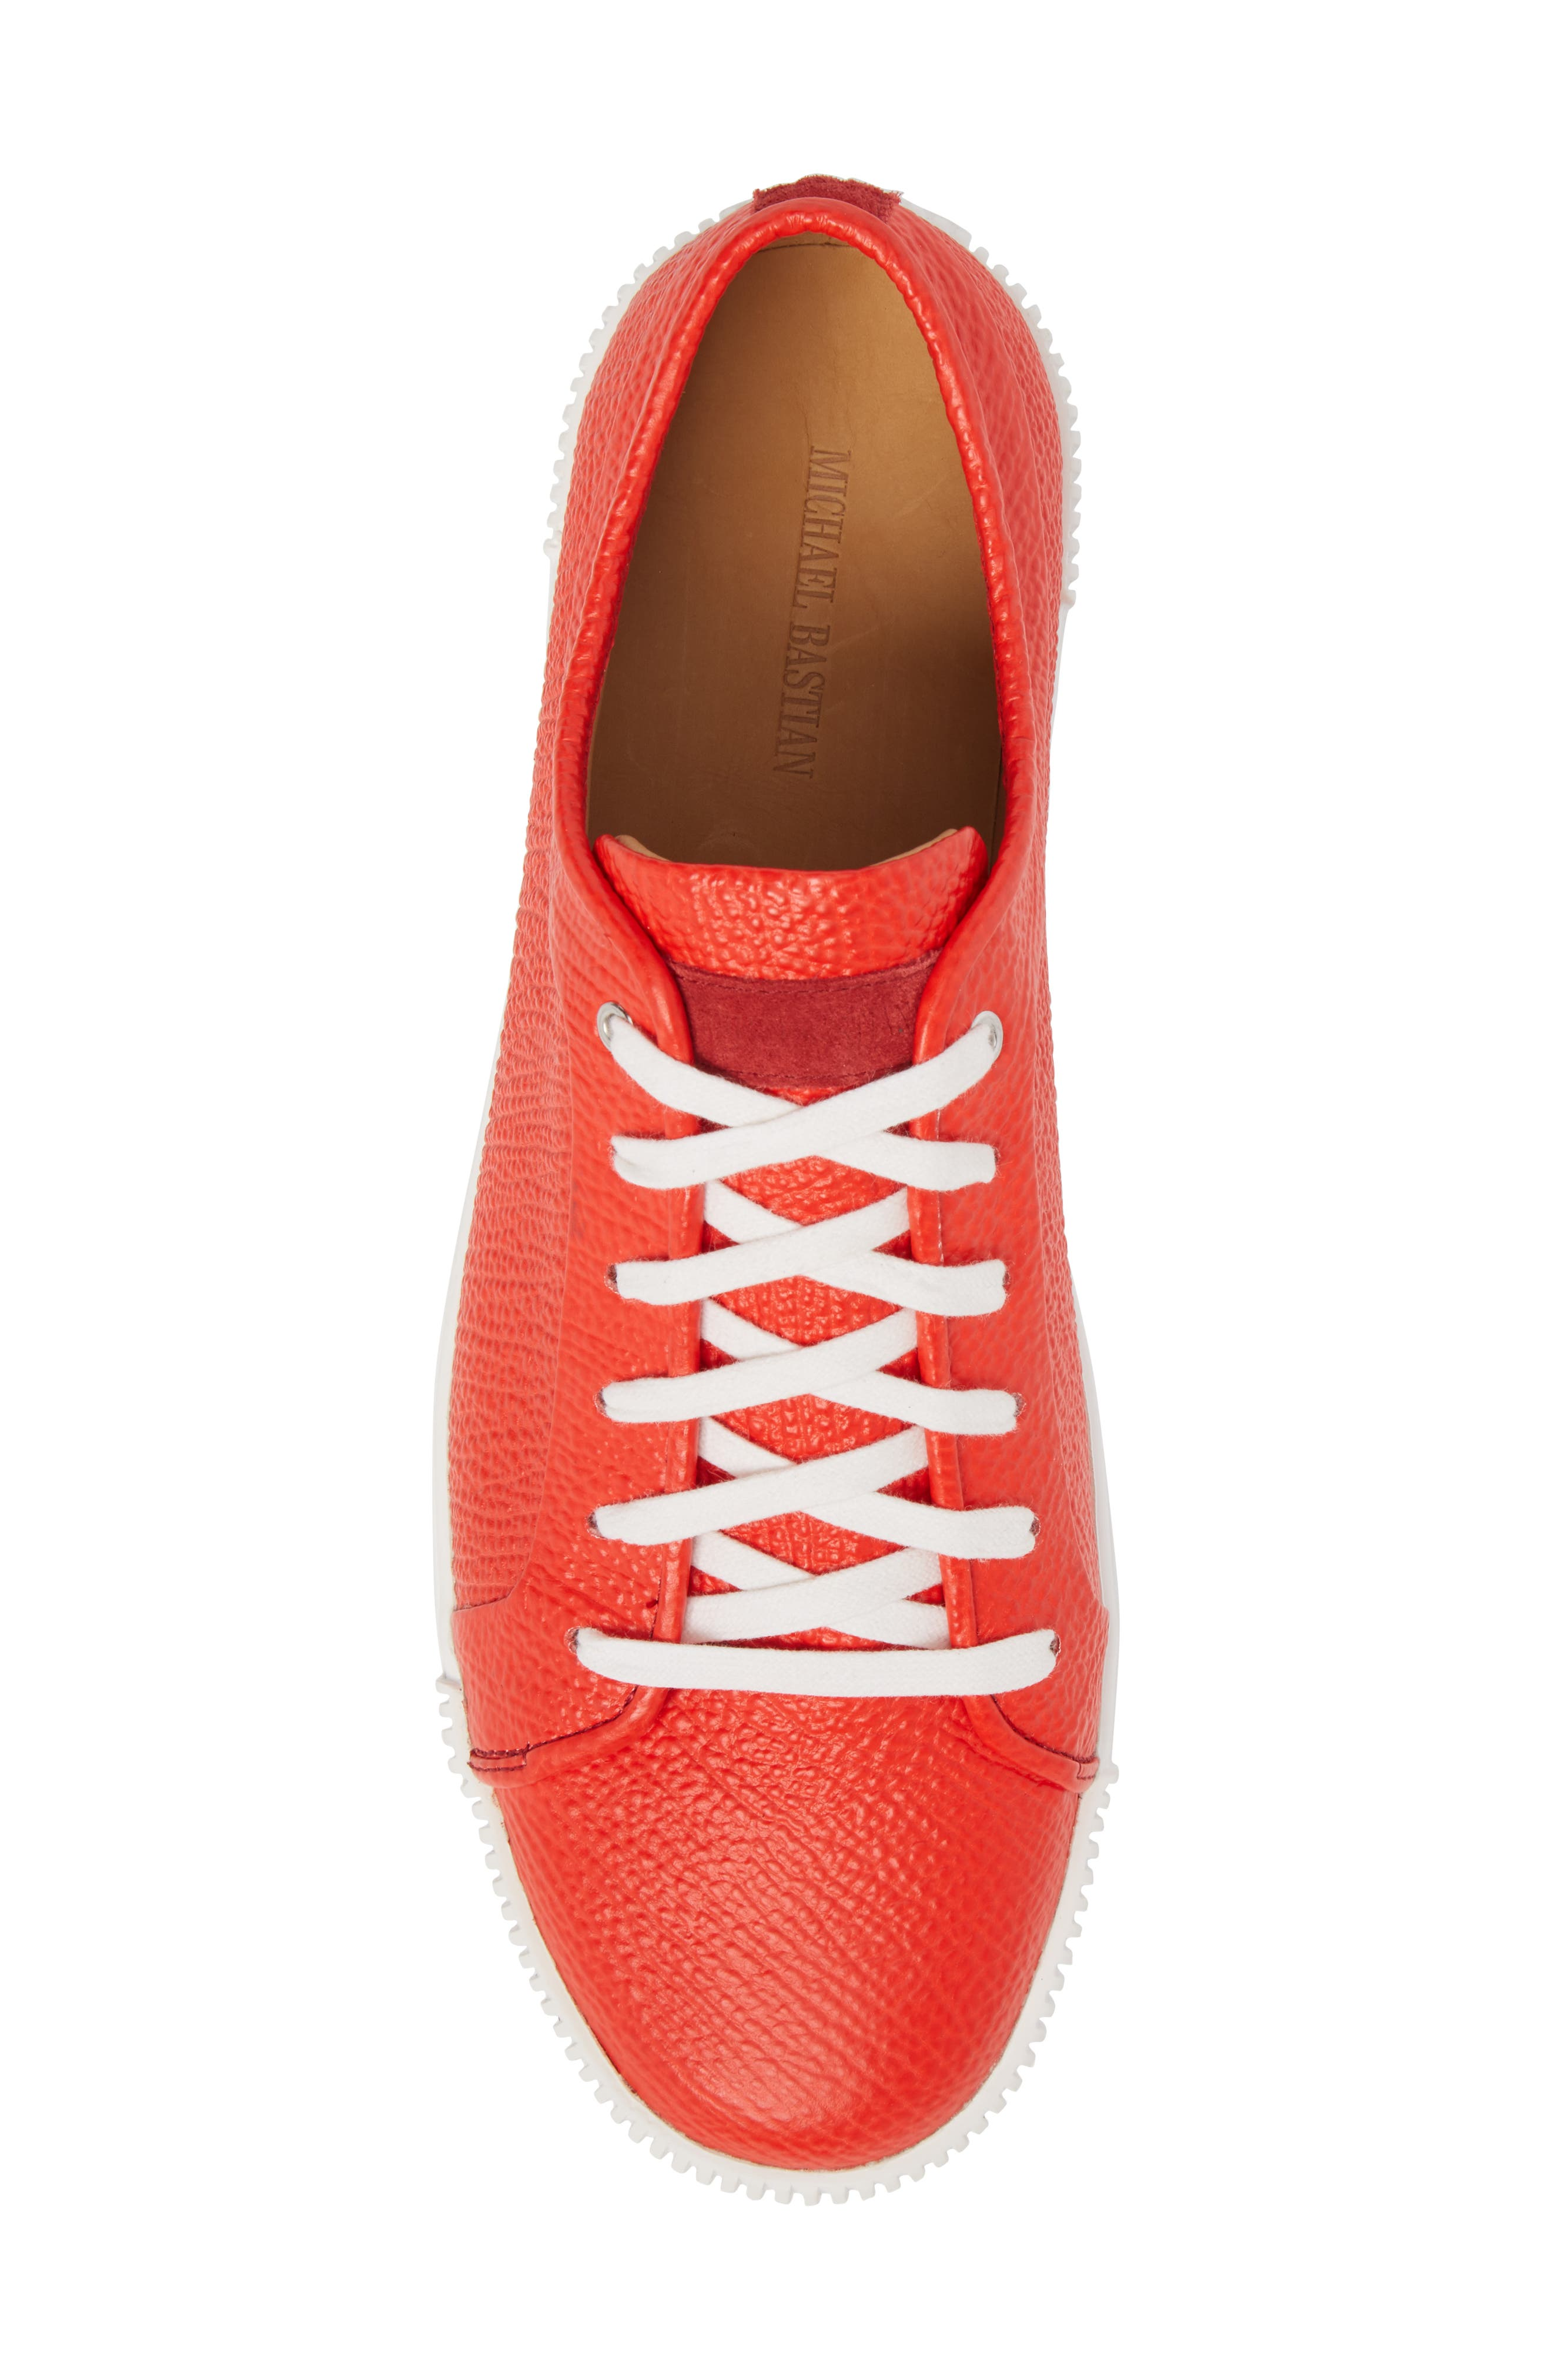 Lyons Low Top Sneaker,                             Alternate thumbnail 5, color,                             Red Leather